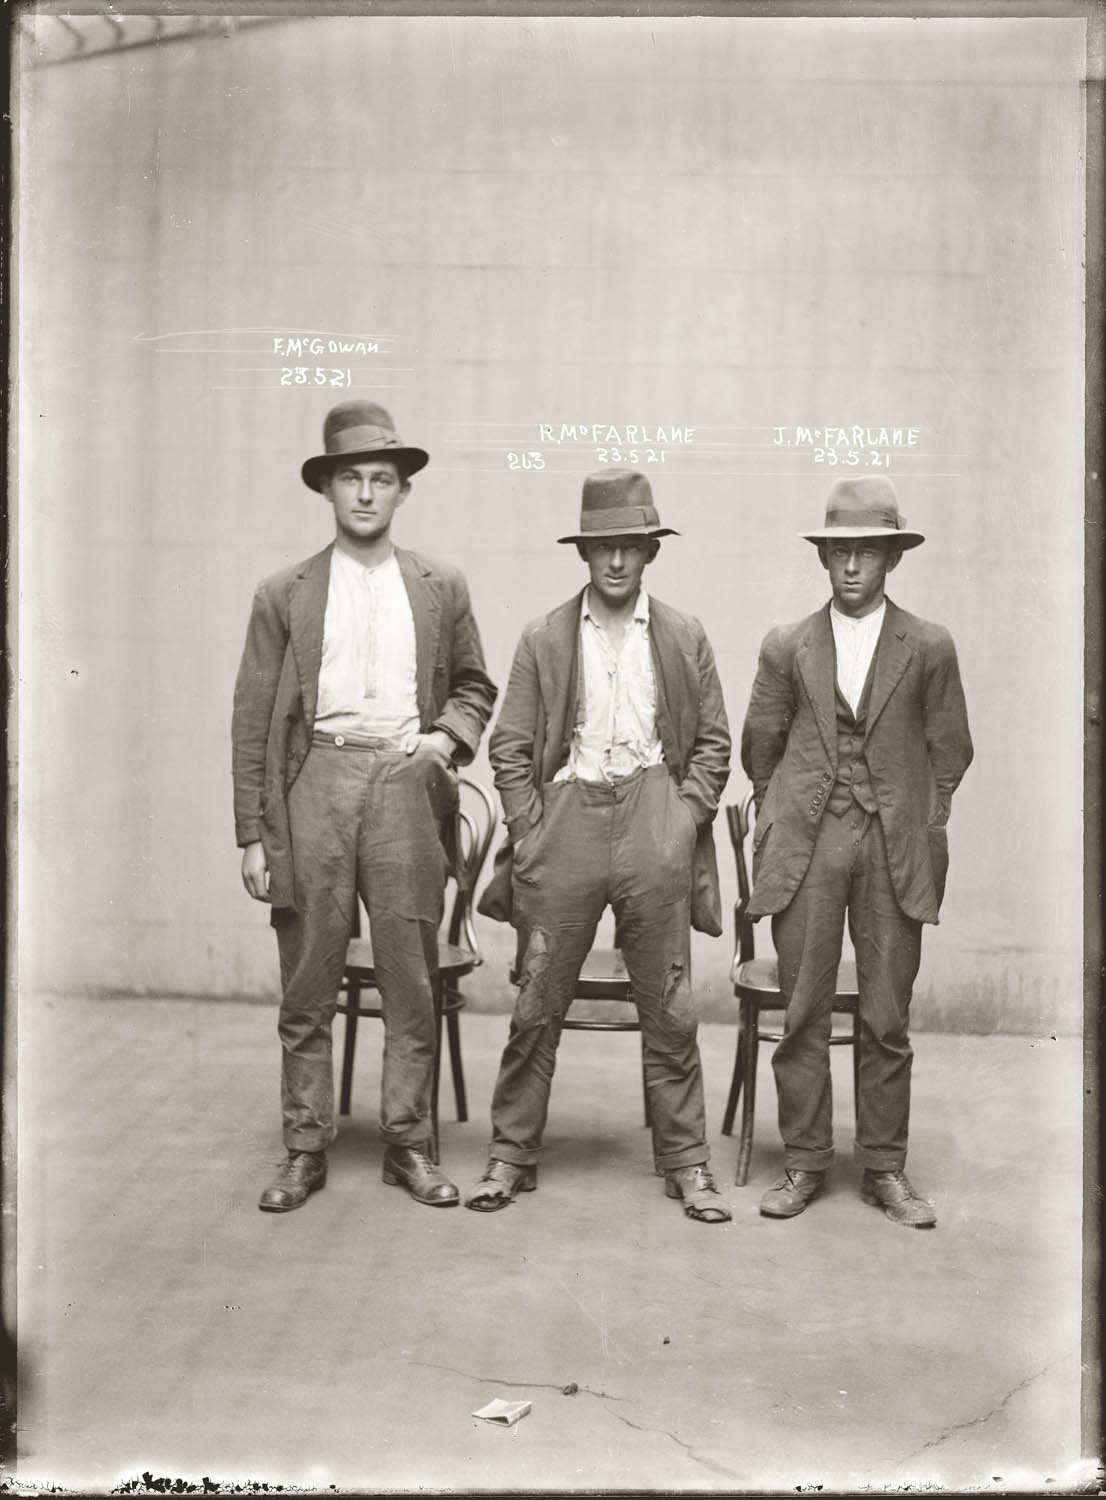 Mug shot of Frank McGowan, Robert McFarlane and John Dennis McFarlane, 23 May 1921, Central Police Station, Sydney.